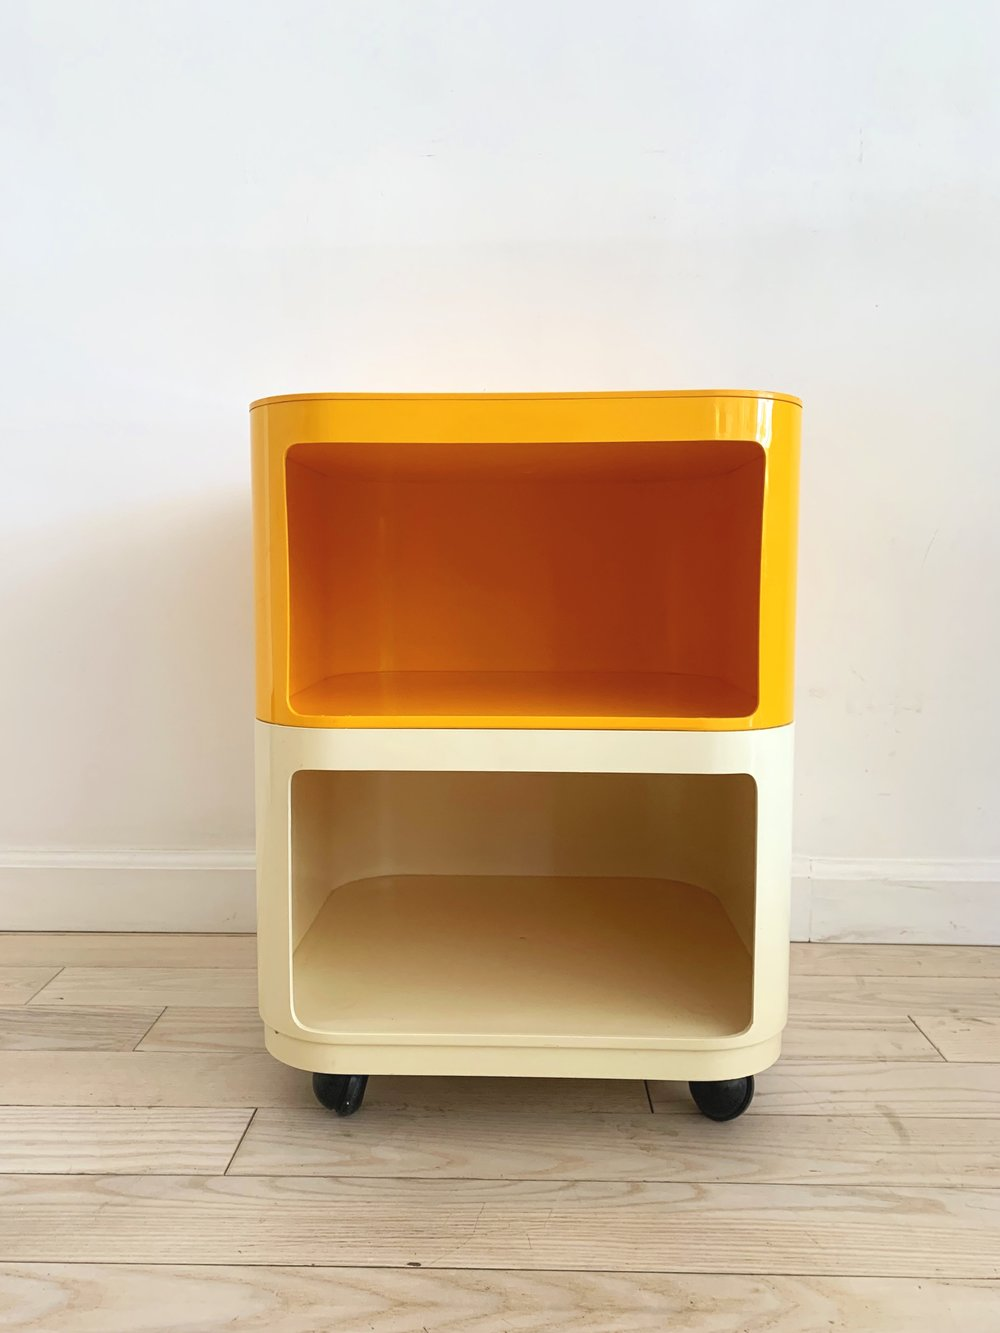 1970s Two-Tone Cart by Anna Castelli for Kartell